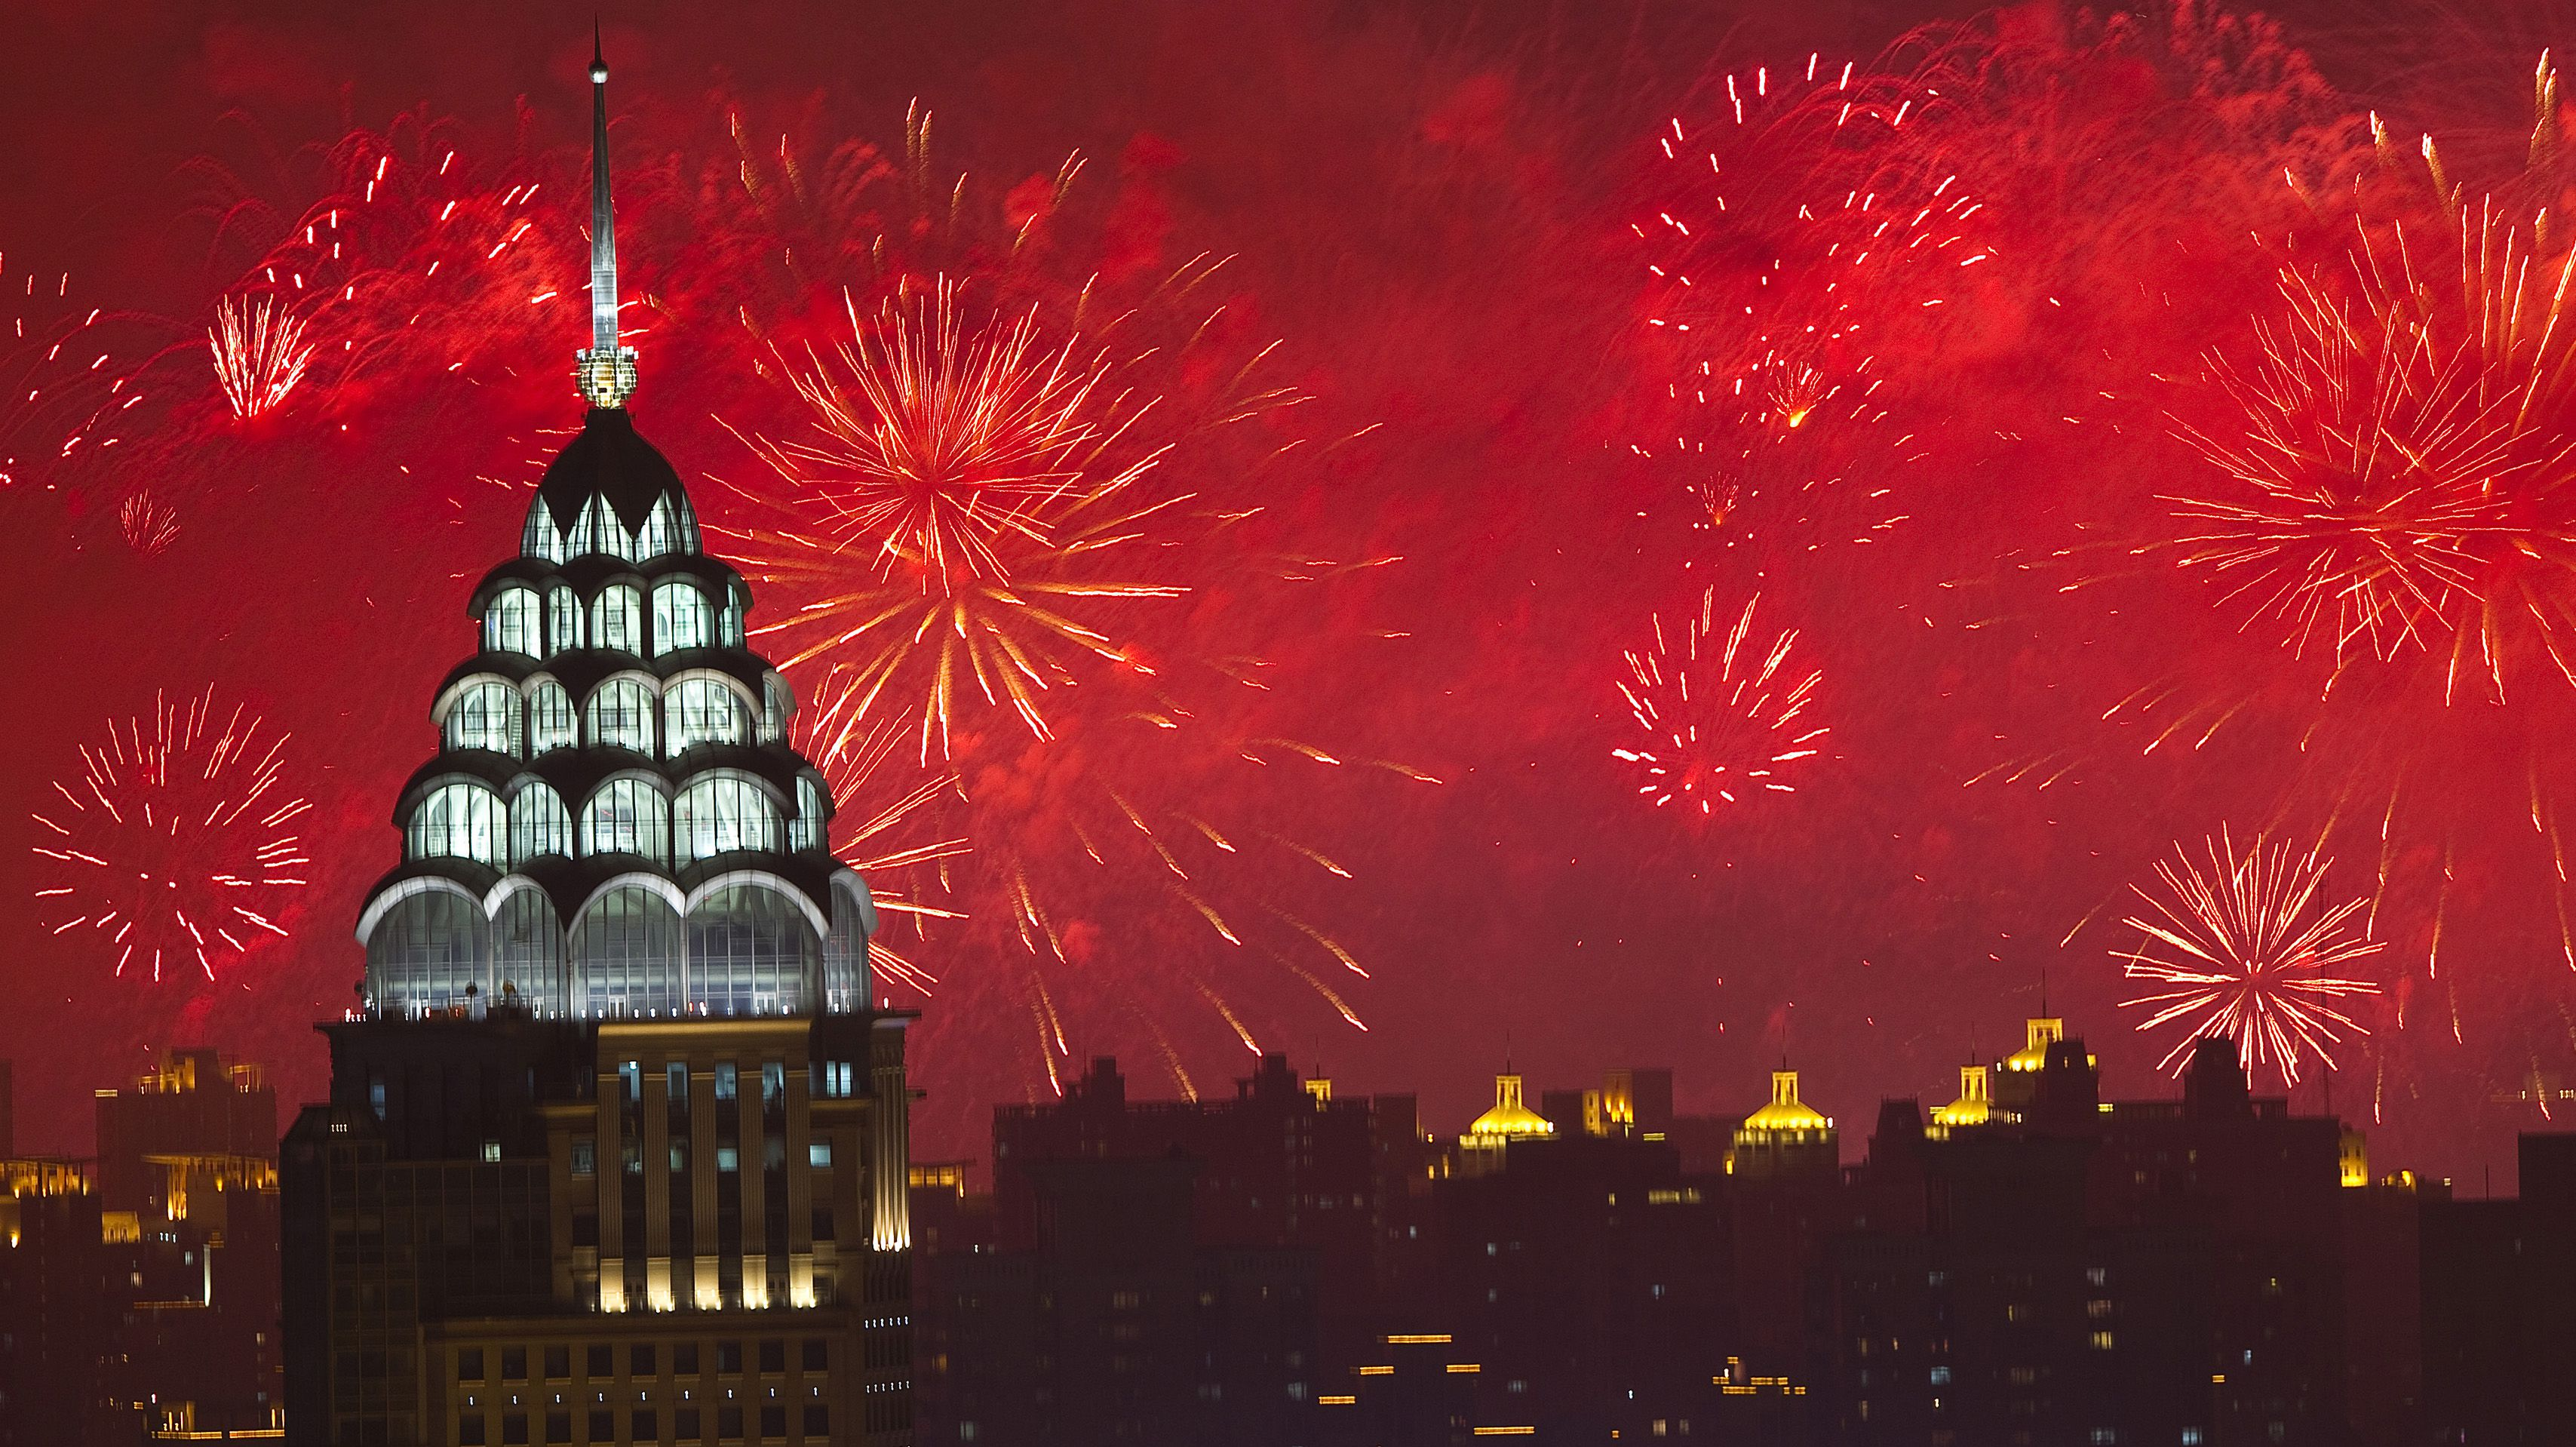 Fireworks light up the Shanghai skyline during the opening ceremony for the Shanghai 2010 World Exhibition, April 30, 2010. REUTERS/Ian Langsdon